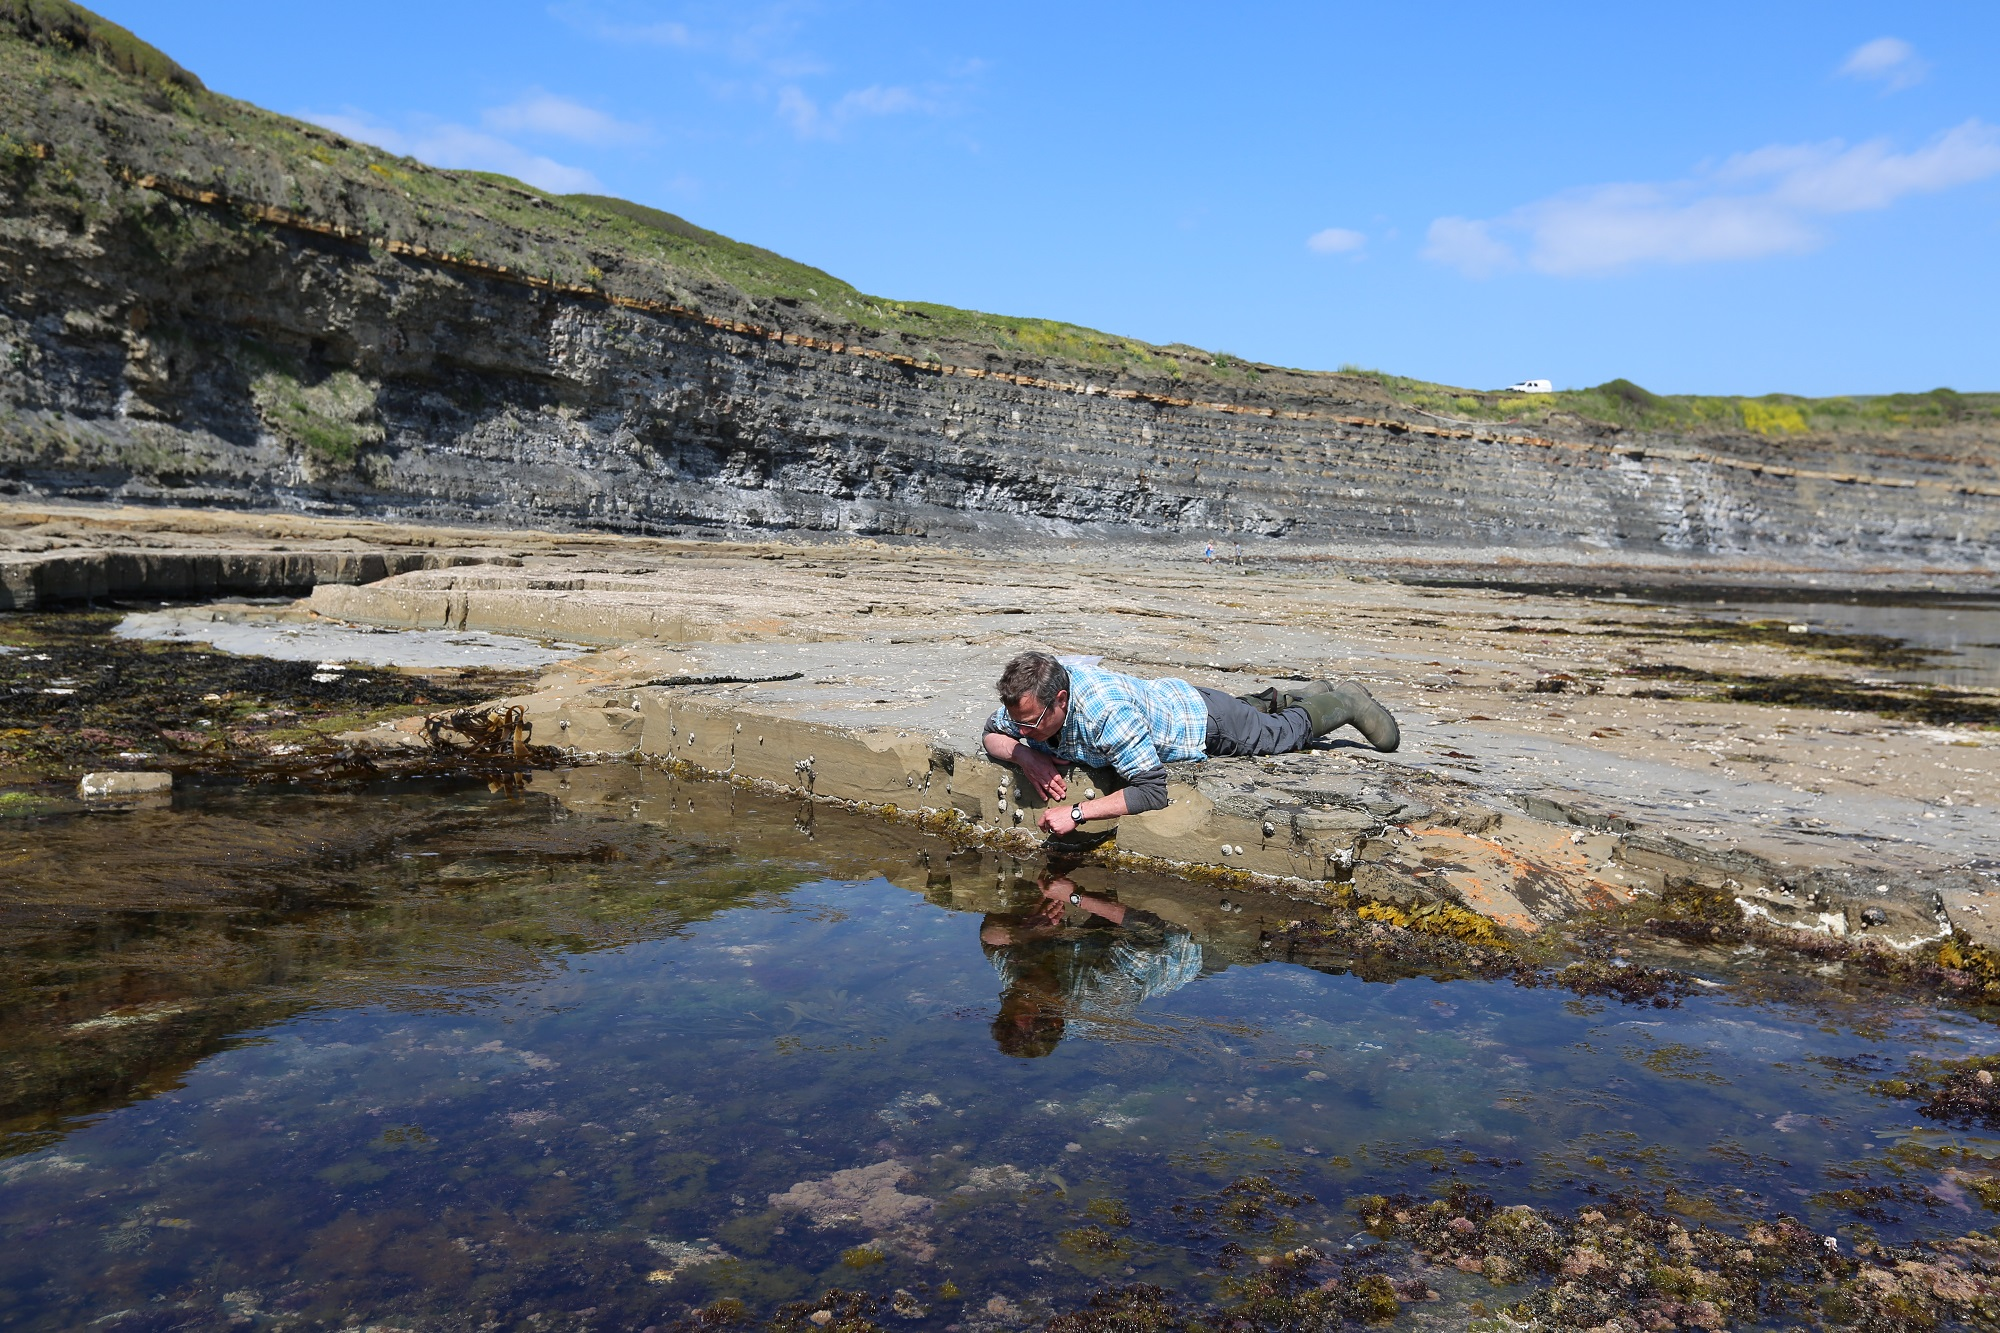 INQUISITIVE: Hugh Fearnley-Whittingstall looking into a rock pool as part of his Hugh's Wild West TV series